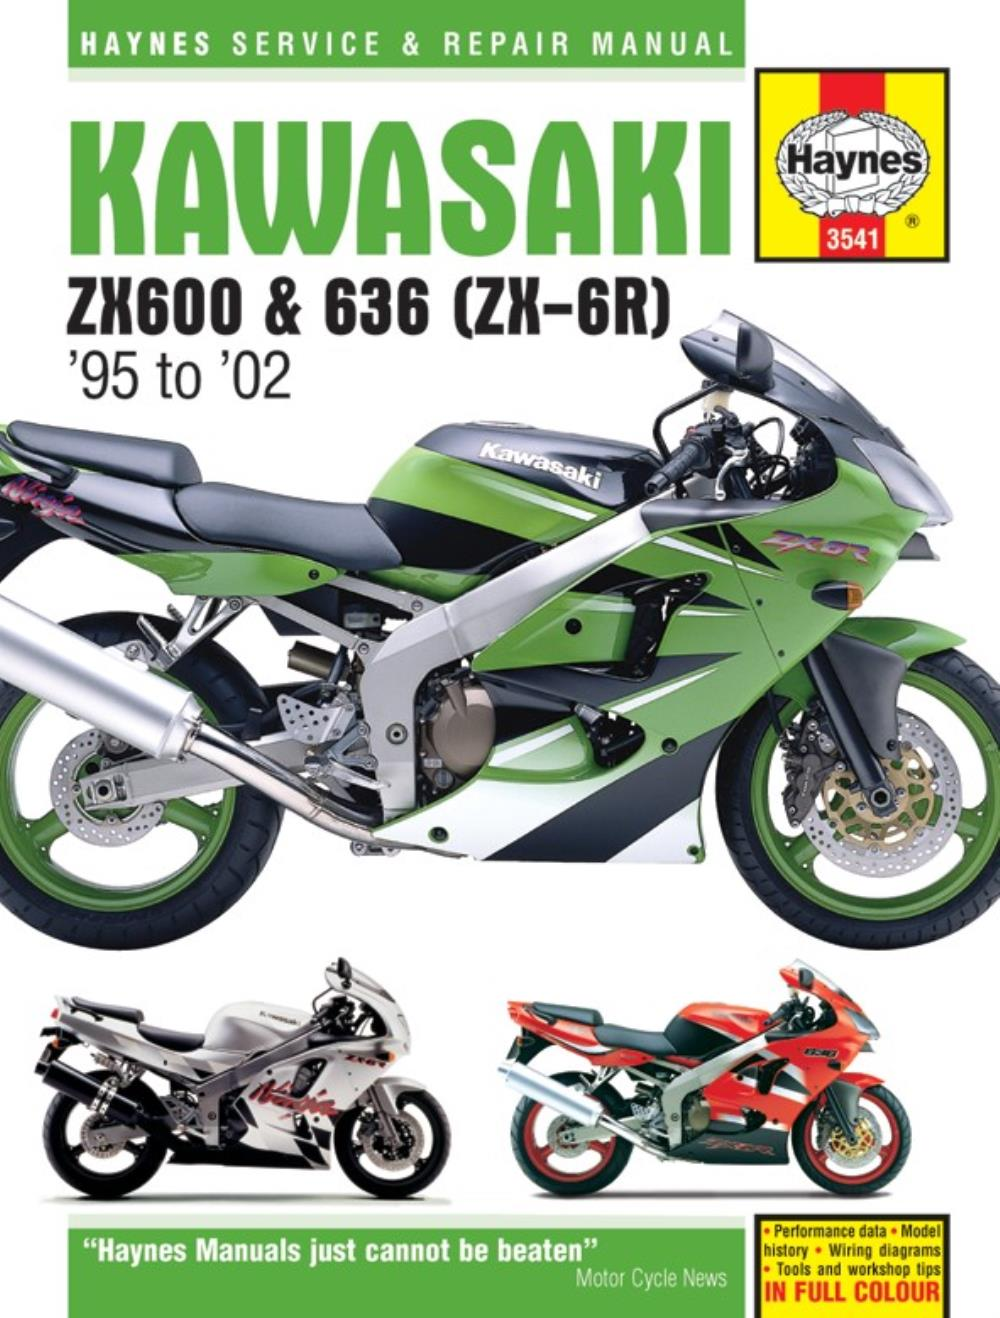 WRG-1056] 1995 Kawasaki Zx6r Wiring Diagram on